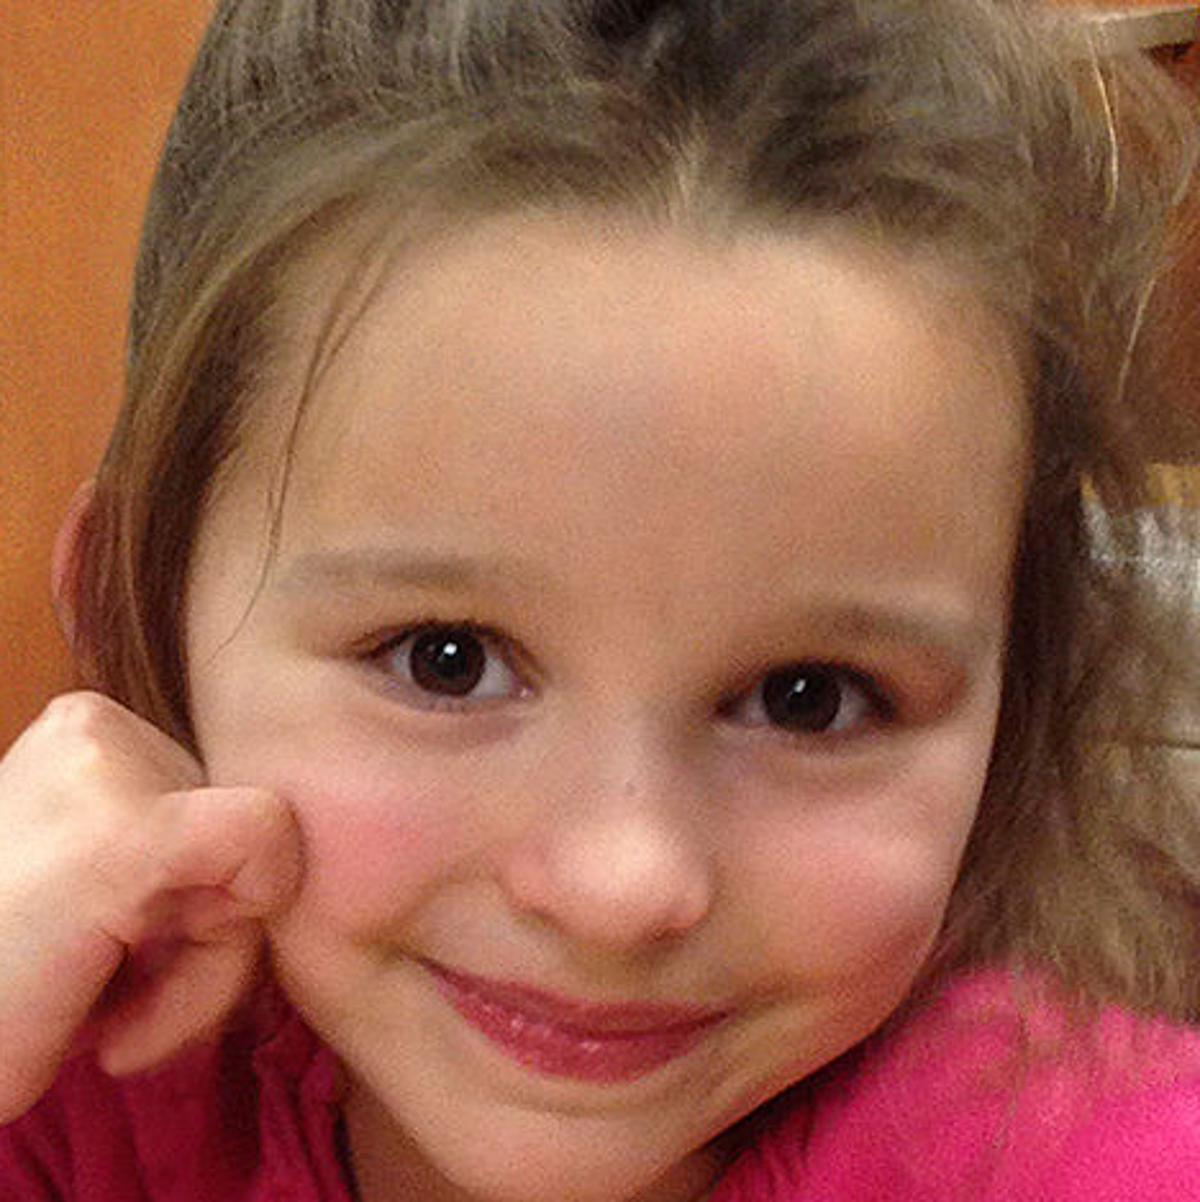 Hundreds come out to celebrate young girl whose life was cut